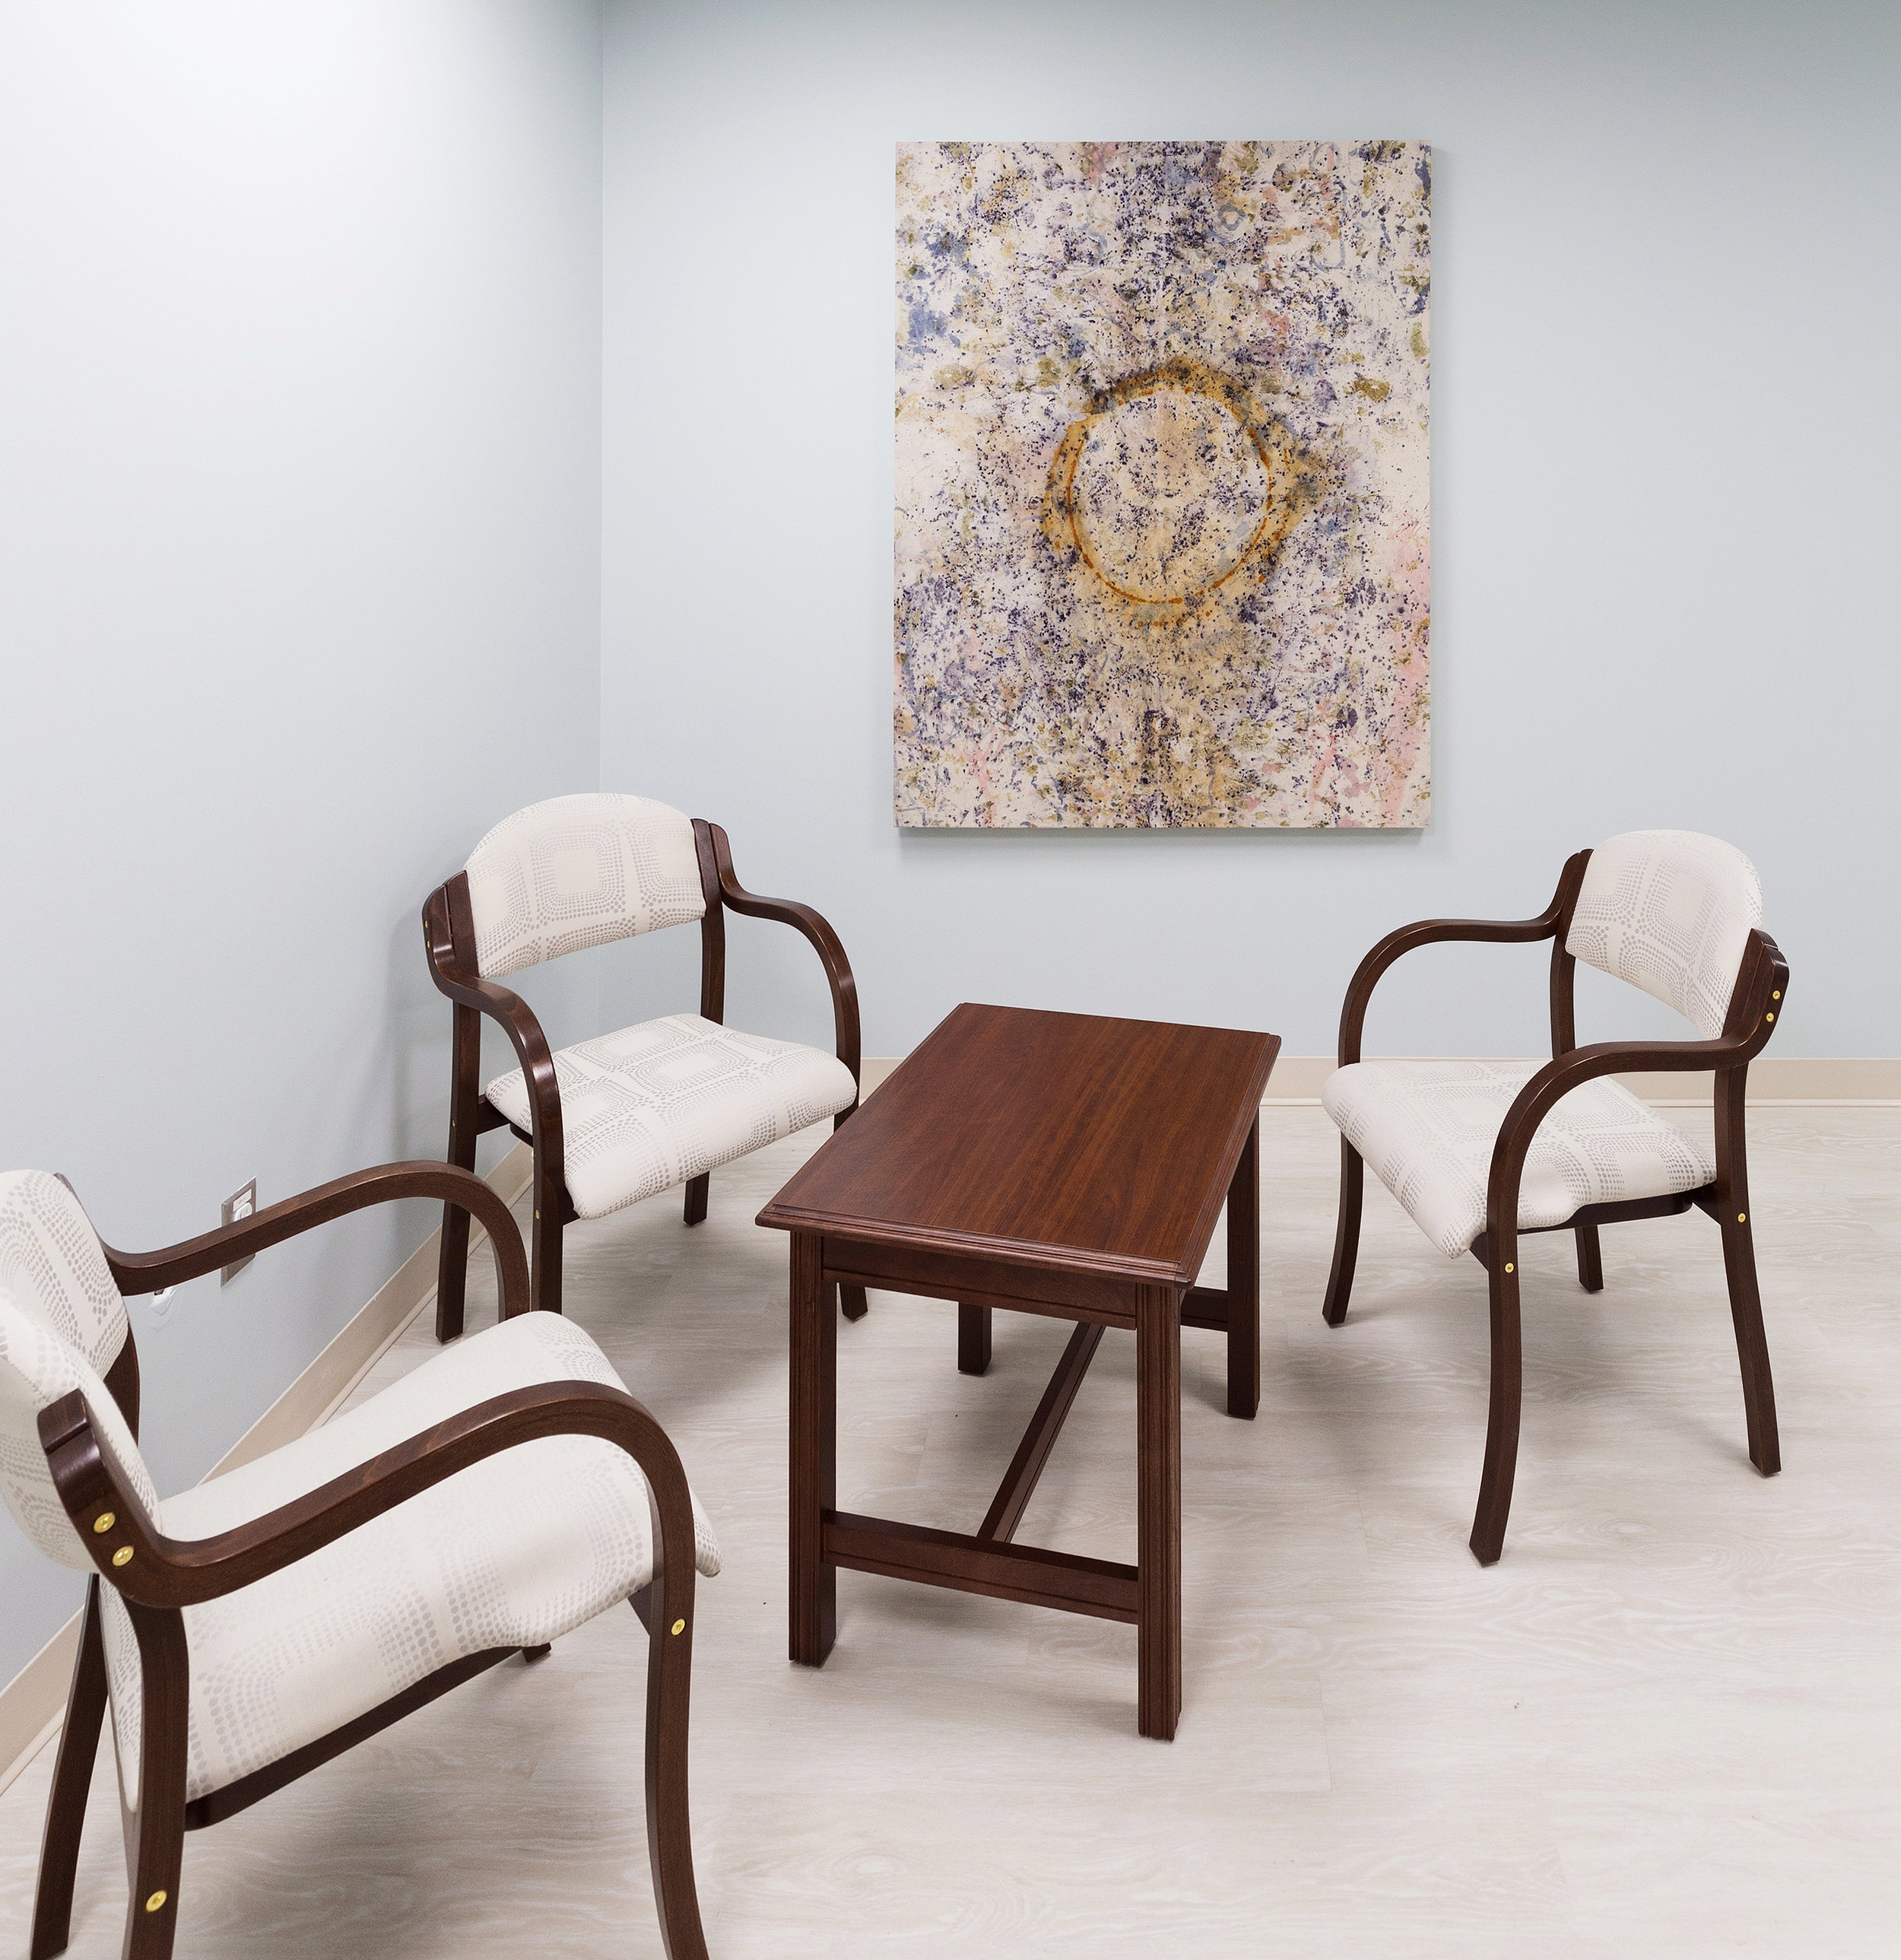 Installation View: Spiritual Care Centre,  Perley and Rideau Veterans' Health Centre,  Ottawa, On  Untitled, Various Plant Materials (including Indigo, Madder Root, Onion Skins, Roses, Sumac, and Wildflowers) and Rust Sediments on Canvas,  5 x 4 ft, 2019  This artwork was made by residents of the Perley and Rideau Veterans' Health Centre under the guidance of Creative Arts Instructor Gillian King and Spiritual Health Practitioner Jessie Stephenson, in collaboration with Therapeutic Recreation Creative Arts - Horticultural Services and Support Services.